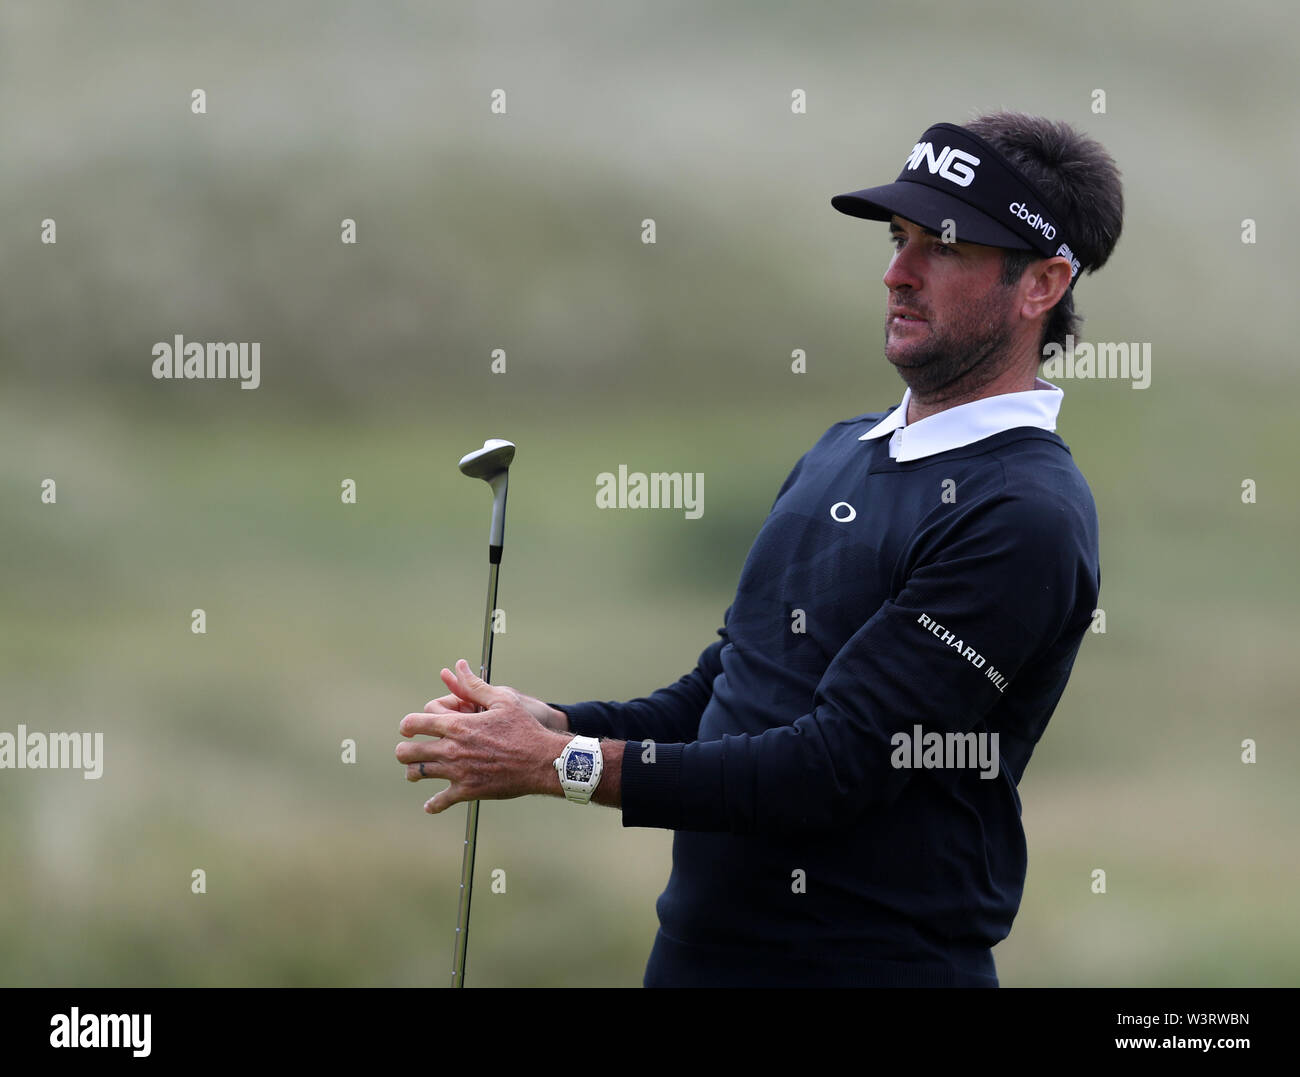 Portrush, Country Antrim, Northern Ireland. 17th July, 2019. The 148th Open Golf Championship, Royal Portrush Golf Club, Practice day; Bubba Watson (USA) practices a pitch sho Credit: Action Plus Sports Images/Alamy Live News Stock Photo